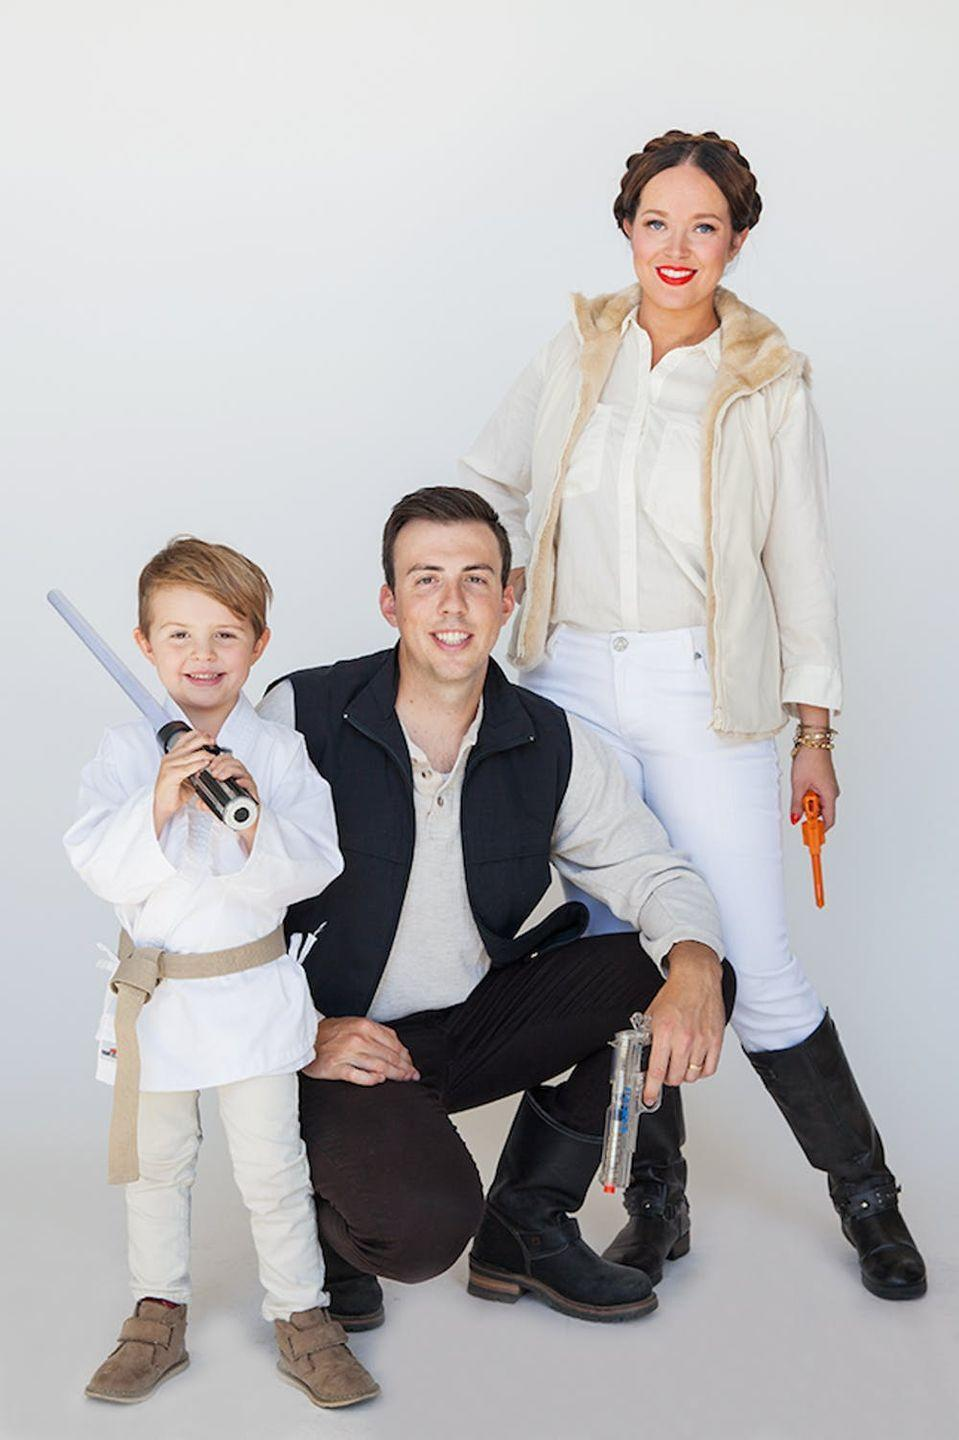 """<p>A not-so-long time ago, in 1977, <em>Episode IV – A New Hope</em> kicked off the beloved George Lucas franchise. Dress the whole family in these '70s <a href=""""https://www.countryliving.com/diy-crafts/g21287723/diy-star-wars-costumes/"""" rel=""""nofollow noopener"""" target=""""_blank"""" data-ylk=""""slk:Star Wars costumes"""" class=""""link rapid-noclick-resp""""><em>Star Wars</em> costumes</a>.</p><p><strong>Get the tutorial at <a href=""""http://sayyes.com/2015/09/halloween-family-costumes-star-wars"""" rel=""""nofollow noopener"""" target=""""_blank"""" data-ylk=""""slk:Say Yes"""" class=""""link rapid-noclick-resp"""">Say Yes</a>.</strong></p><p><strong><a class=""""link rapid-noclick-resp"""" href=""""https://www.amazon.com/YiZYiF-Martial-Middleweight-Breathe-Training/dp/B07BHNL9PN?tag=syn-yahoo-20&ascsubtag=%5Bartid%7C10050.g.22500148%5Bsrc%7Cyahoo-us"""" rel=""""nofollow noopener"""" target=""""_blank"""" data-ylk=""""slk:SHOP KARATE OUTFITS"""">SHOP KARATE OUTFITS</a></strong></p>"""